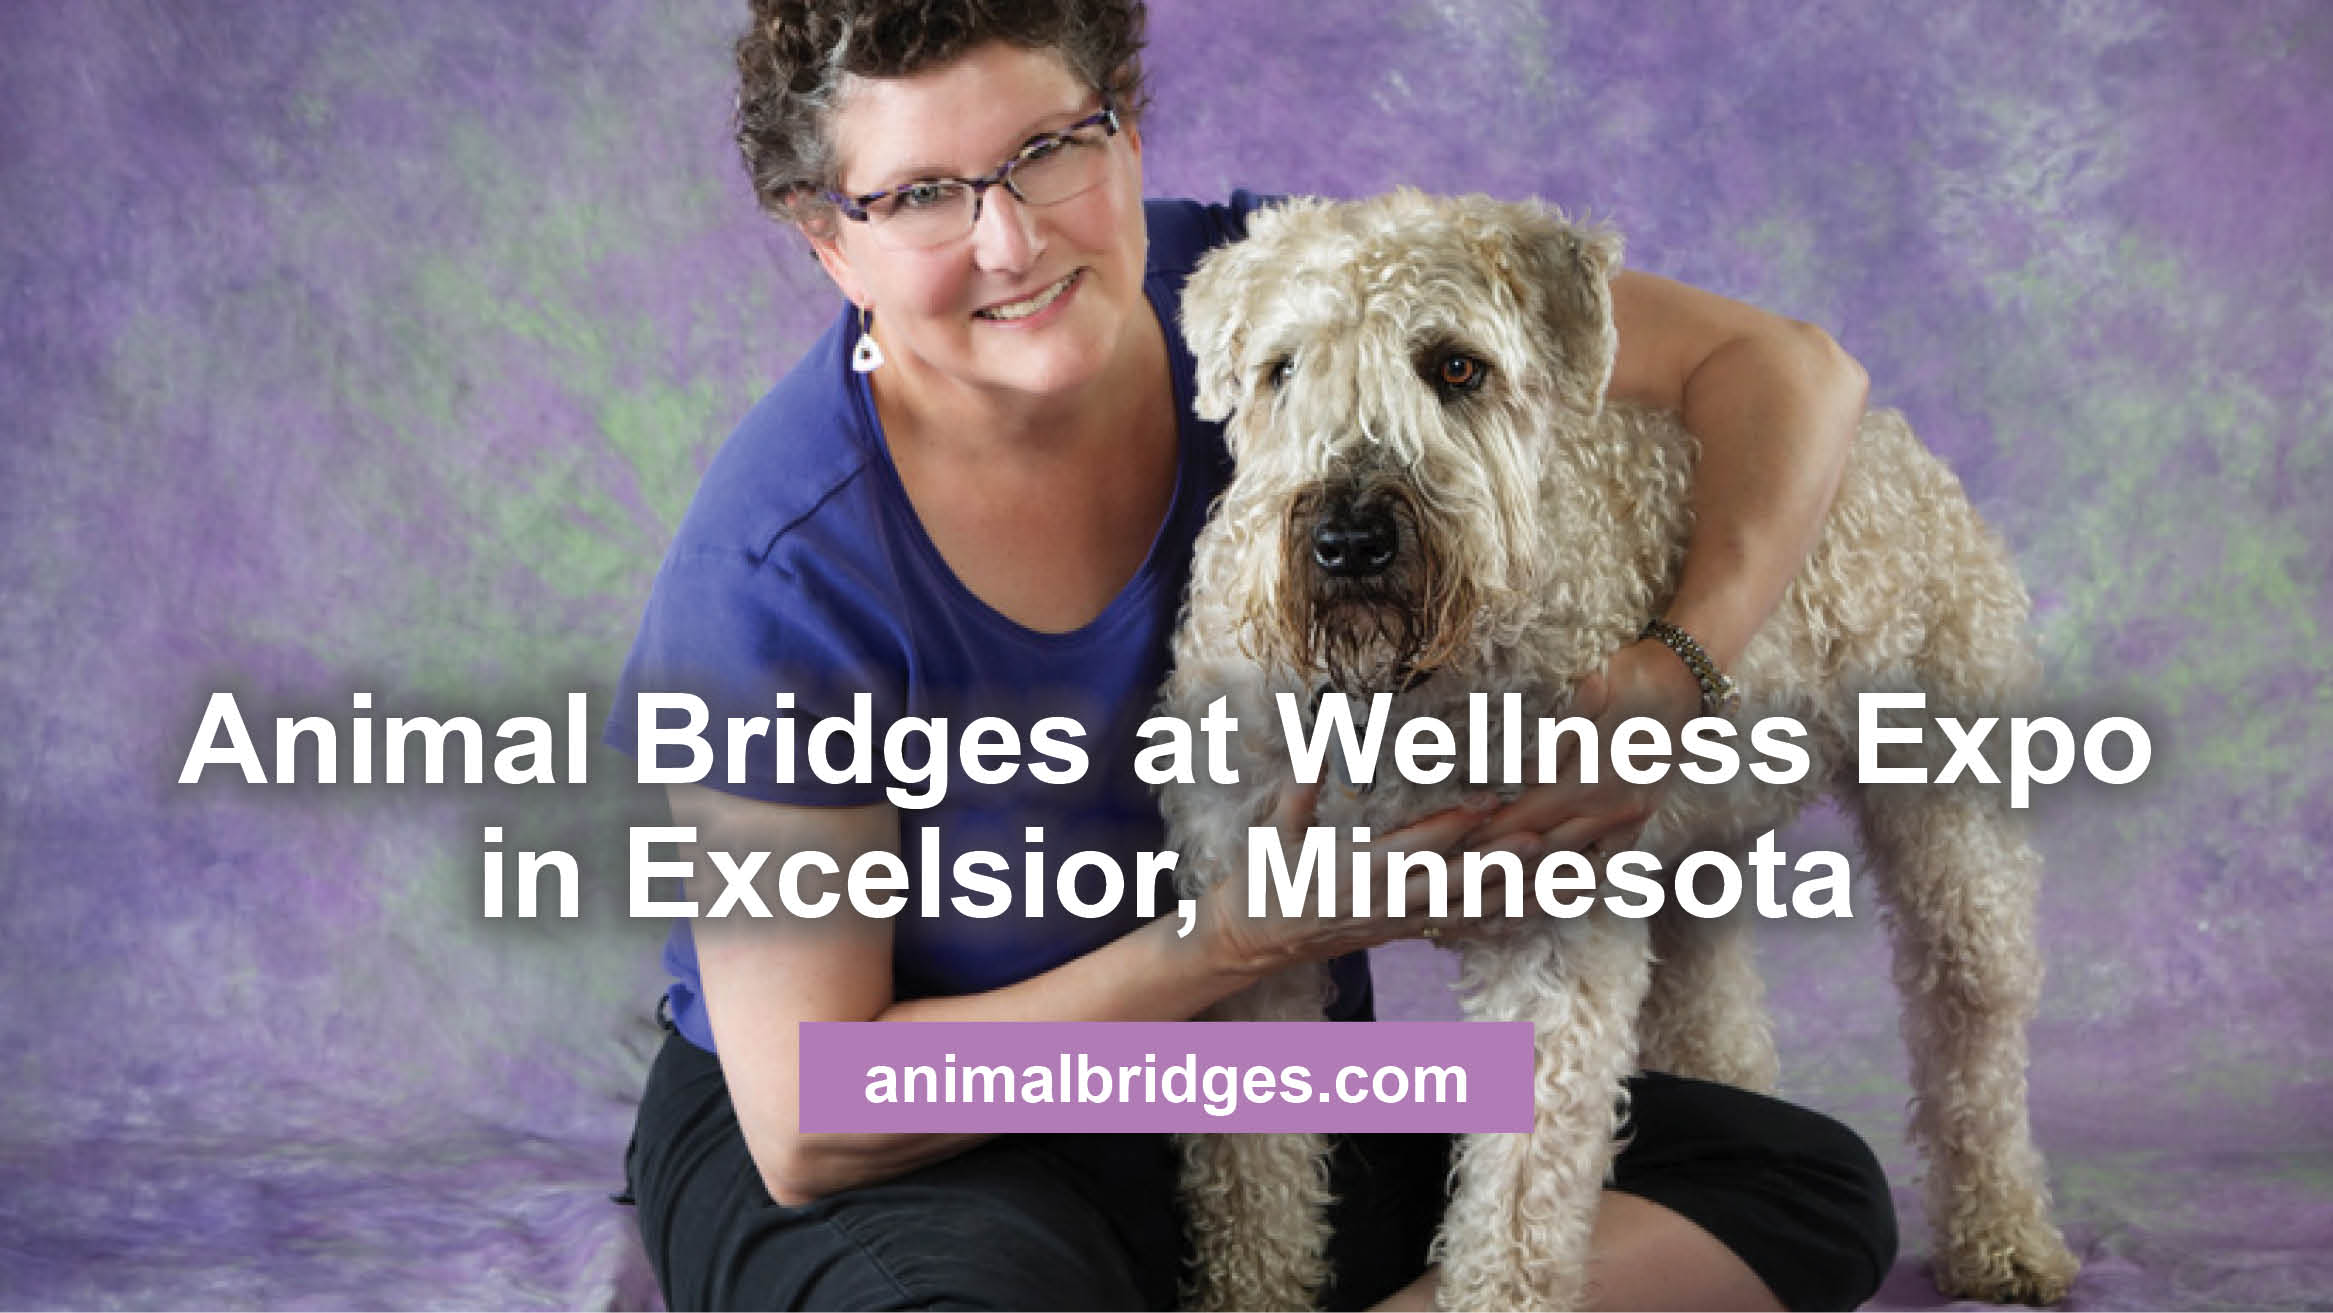 Animal Bridges at Wellness Expo in Excelsior, Minnesota